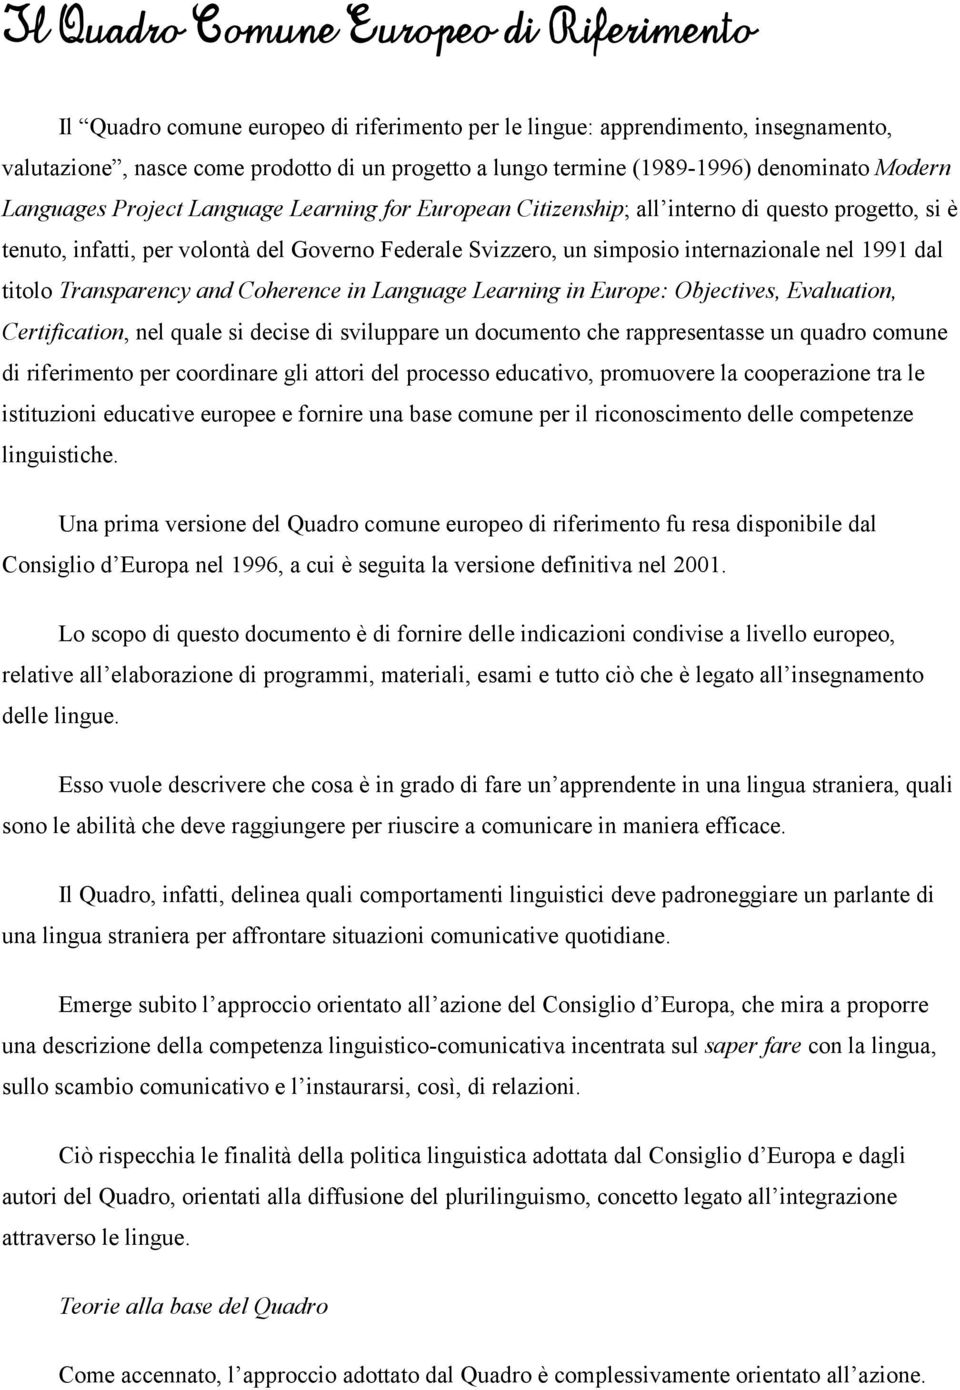 internazionale nel 1991 dal titolo Transparency and Coherence in Language Learning in Europe: Objectives, Evaluation, Certification, nel quale si decise di sviluppare un documento che rappresentasse